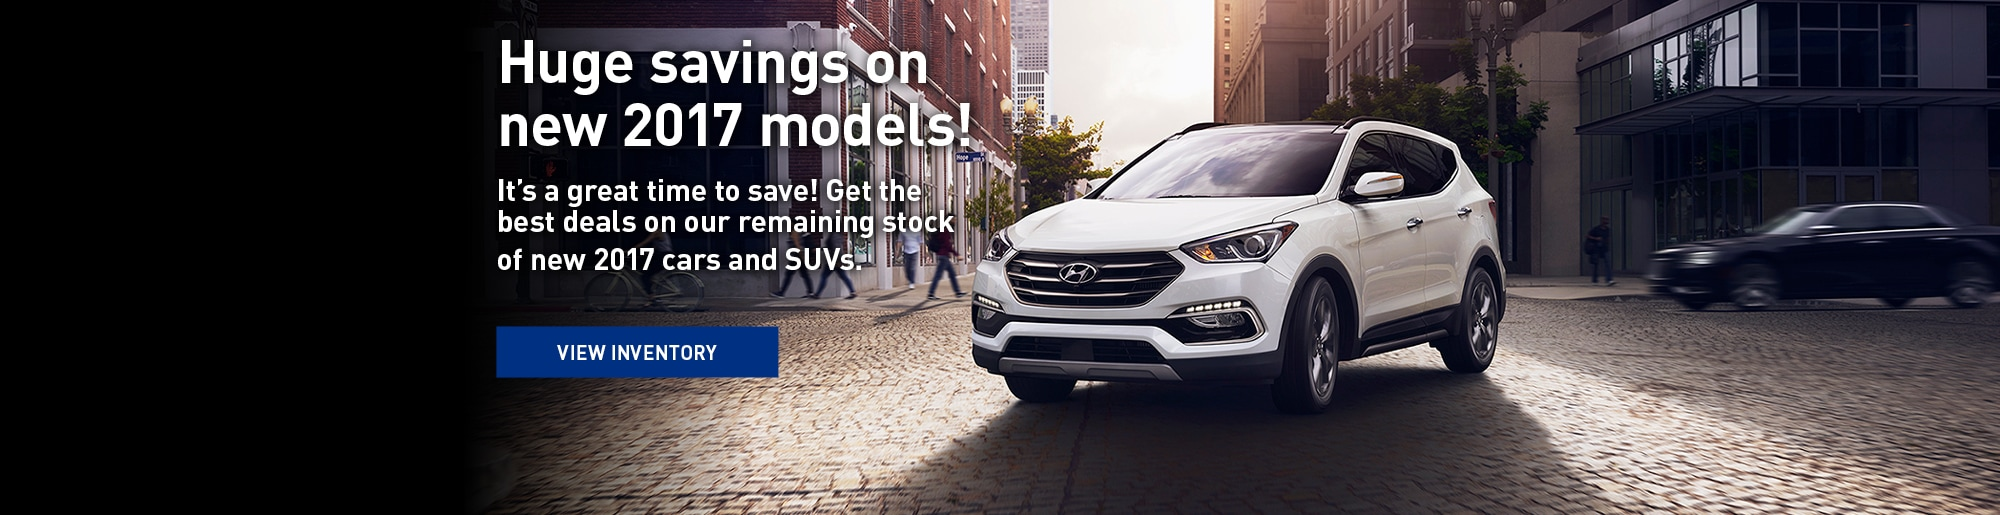 lifestyle chevrolet hyundai every dealership arlington vehicle mirak a in for dealers ma